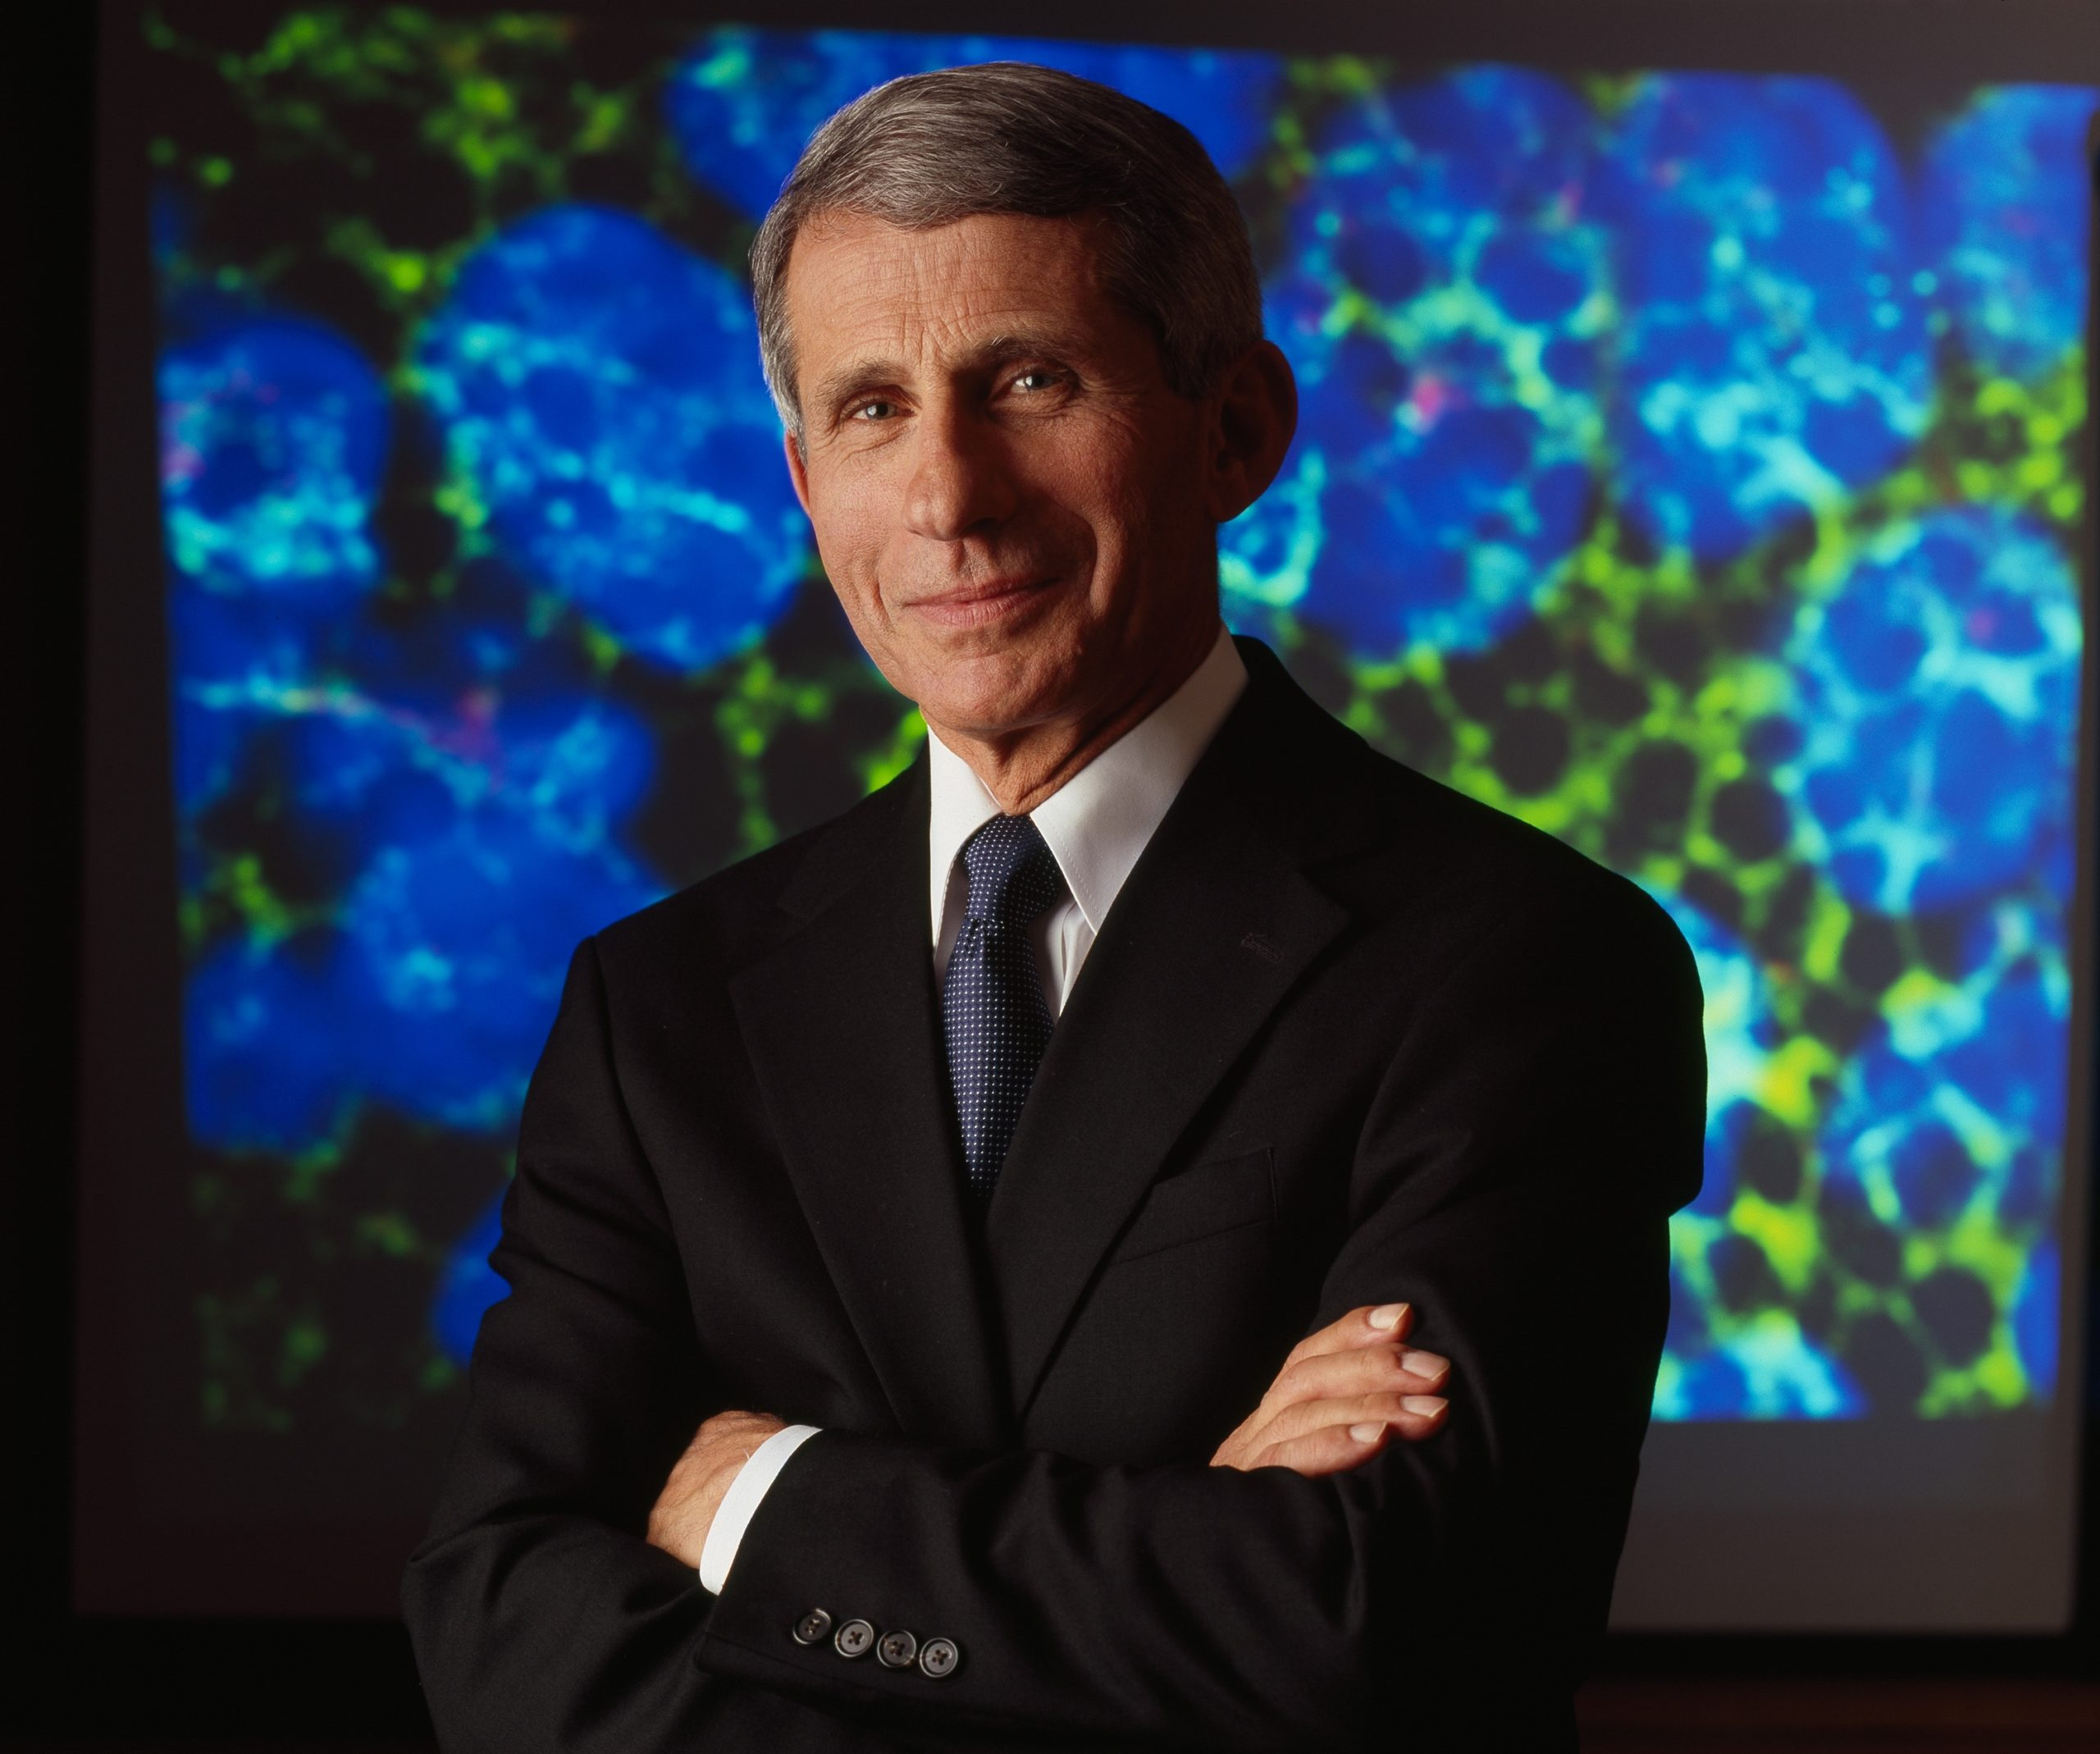 Anthony S. Fauci M.D. NIAID Director 26716880381 scaled